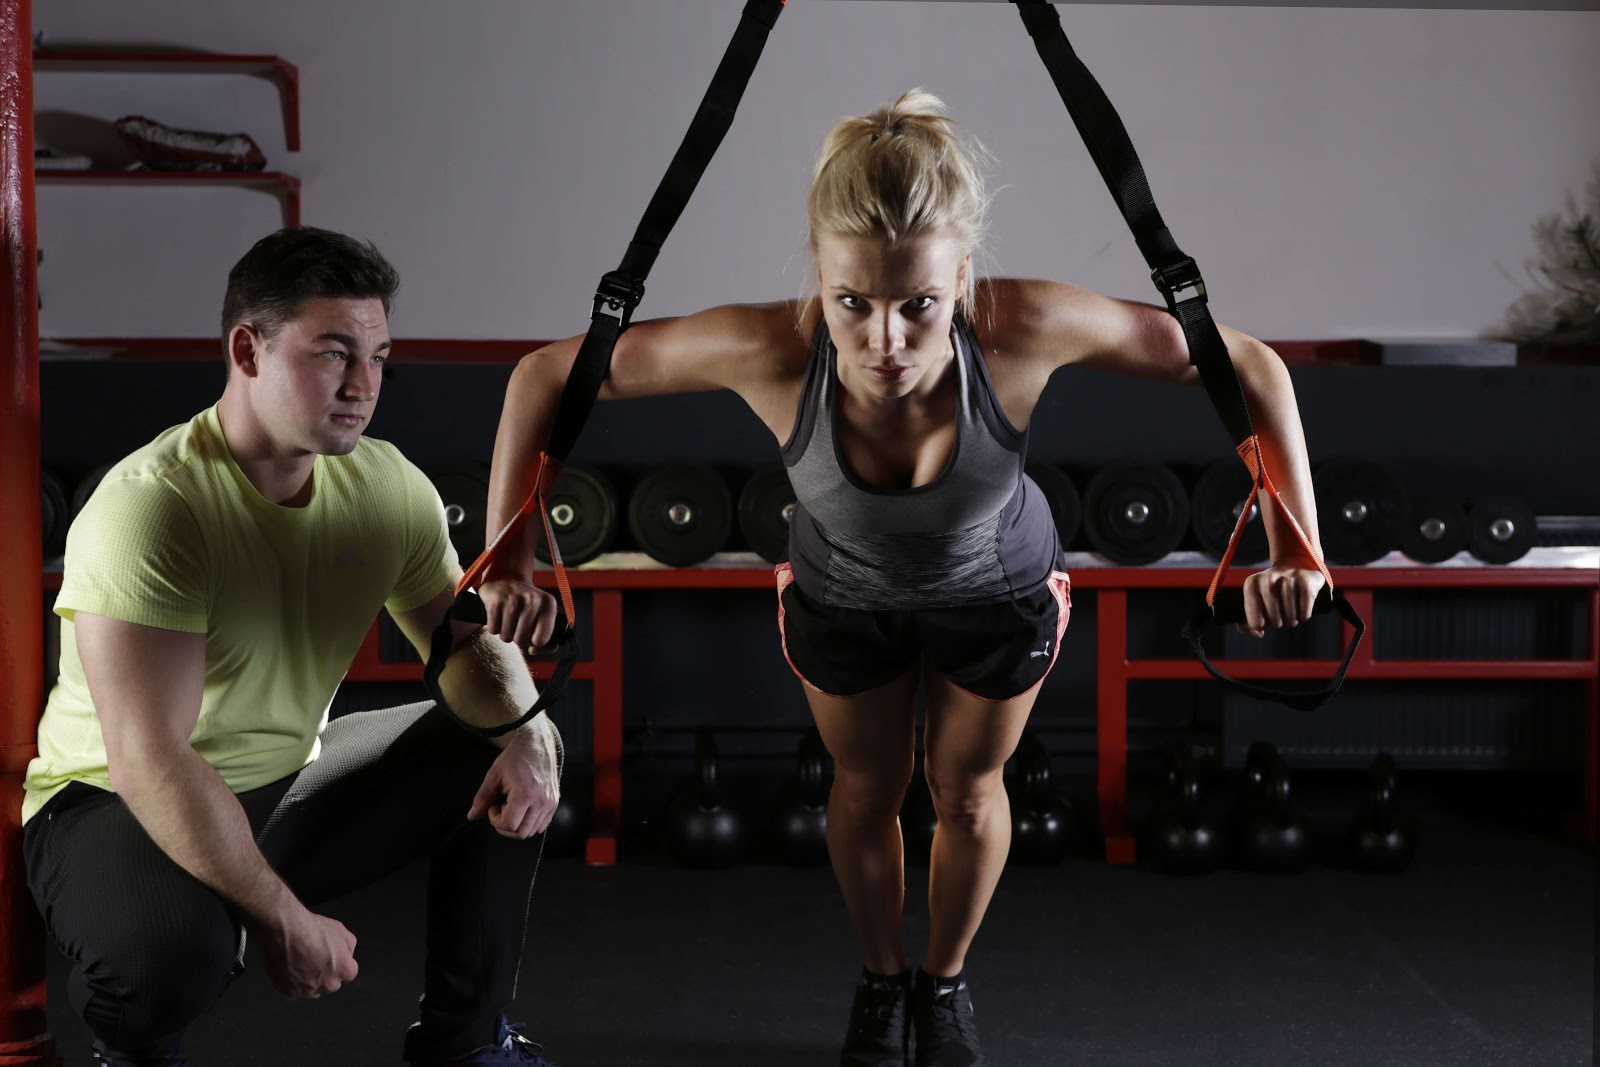 How To Get More Personal Training Clients By Marketing Yourself Like A Professional